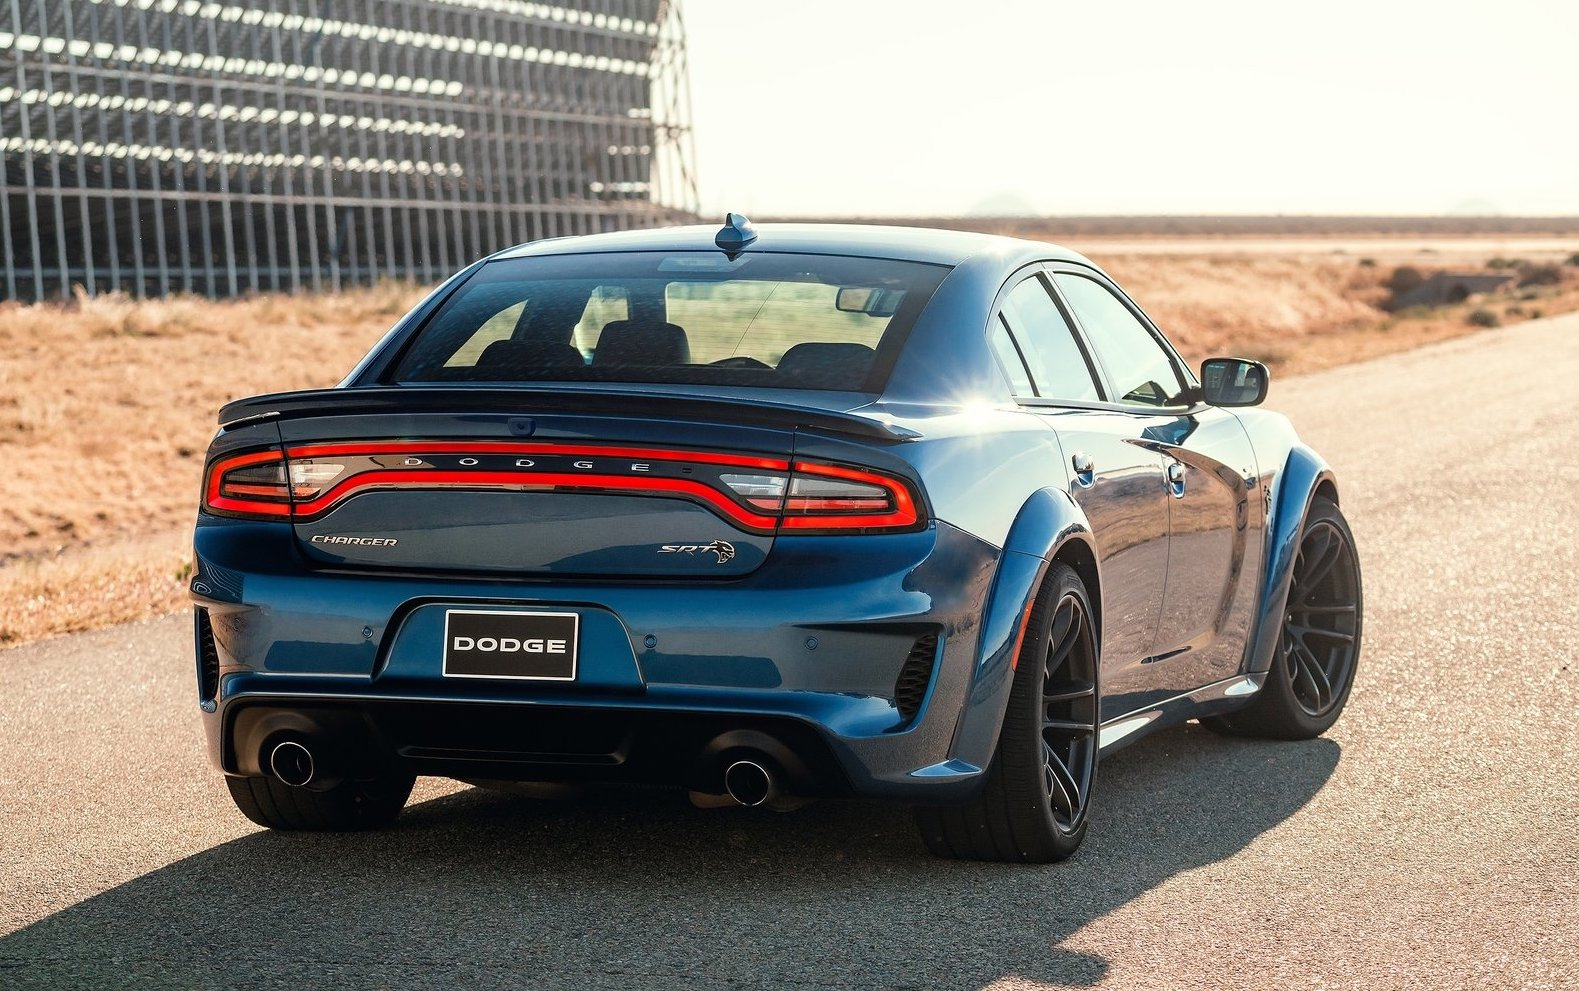 2020 Dodge Charger Srt Hellcat Widebody Revealed Performancedrive